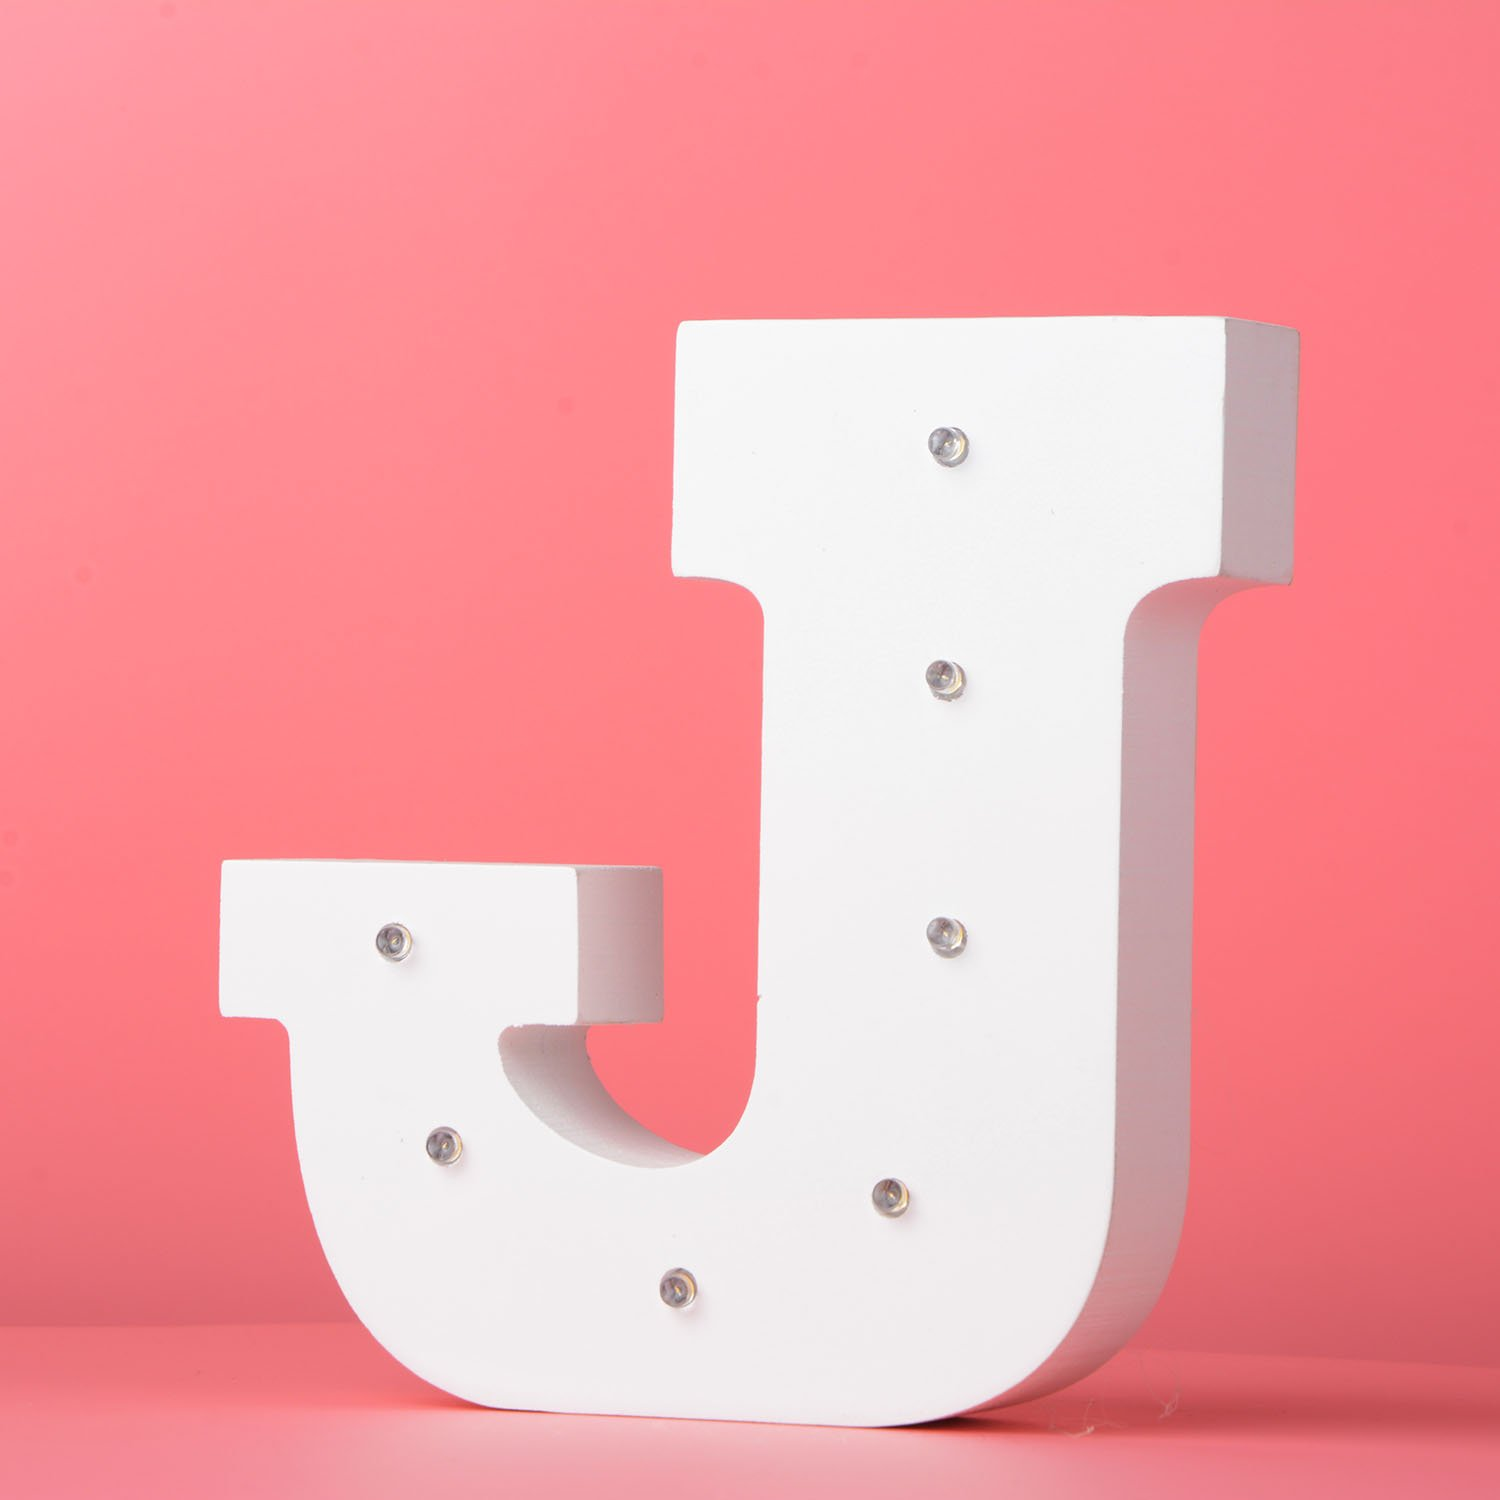 LED Light up Wooden Alphabet Marquee Wall Letter DIY White Letters Lights Sign with Battery Operated for Festival Party Wedding Holiday Birthday Christmas Valentine Bar (Letter J)